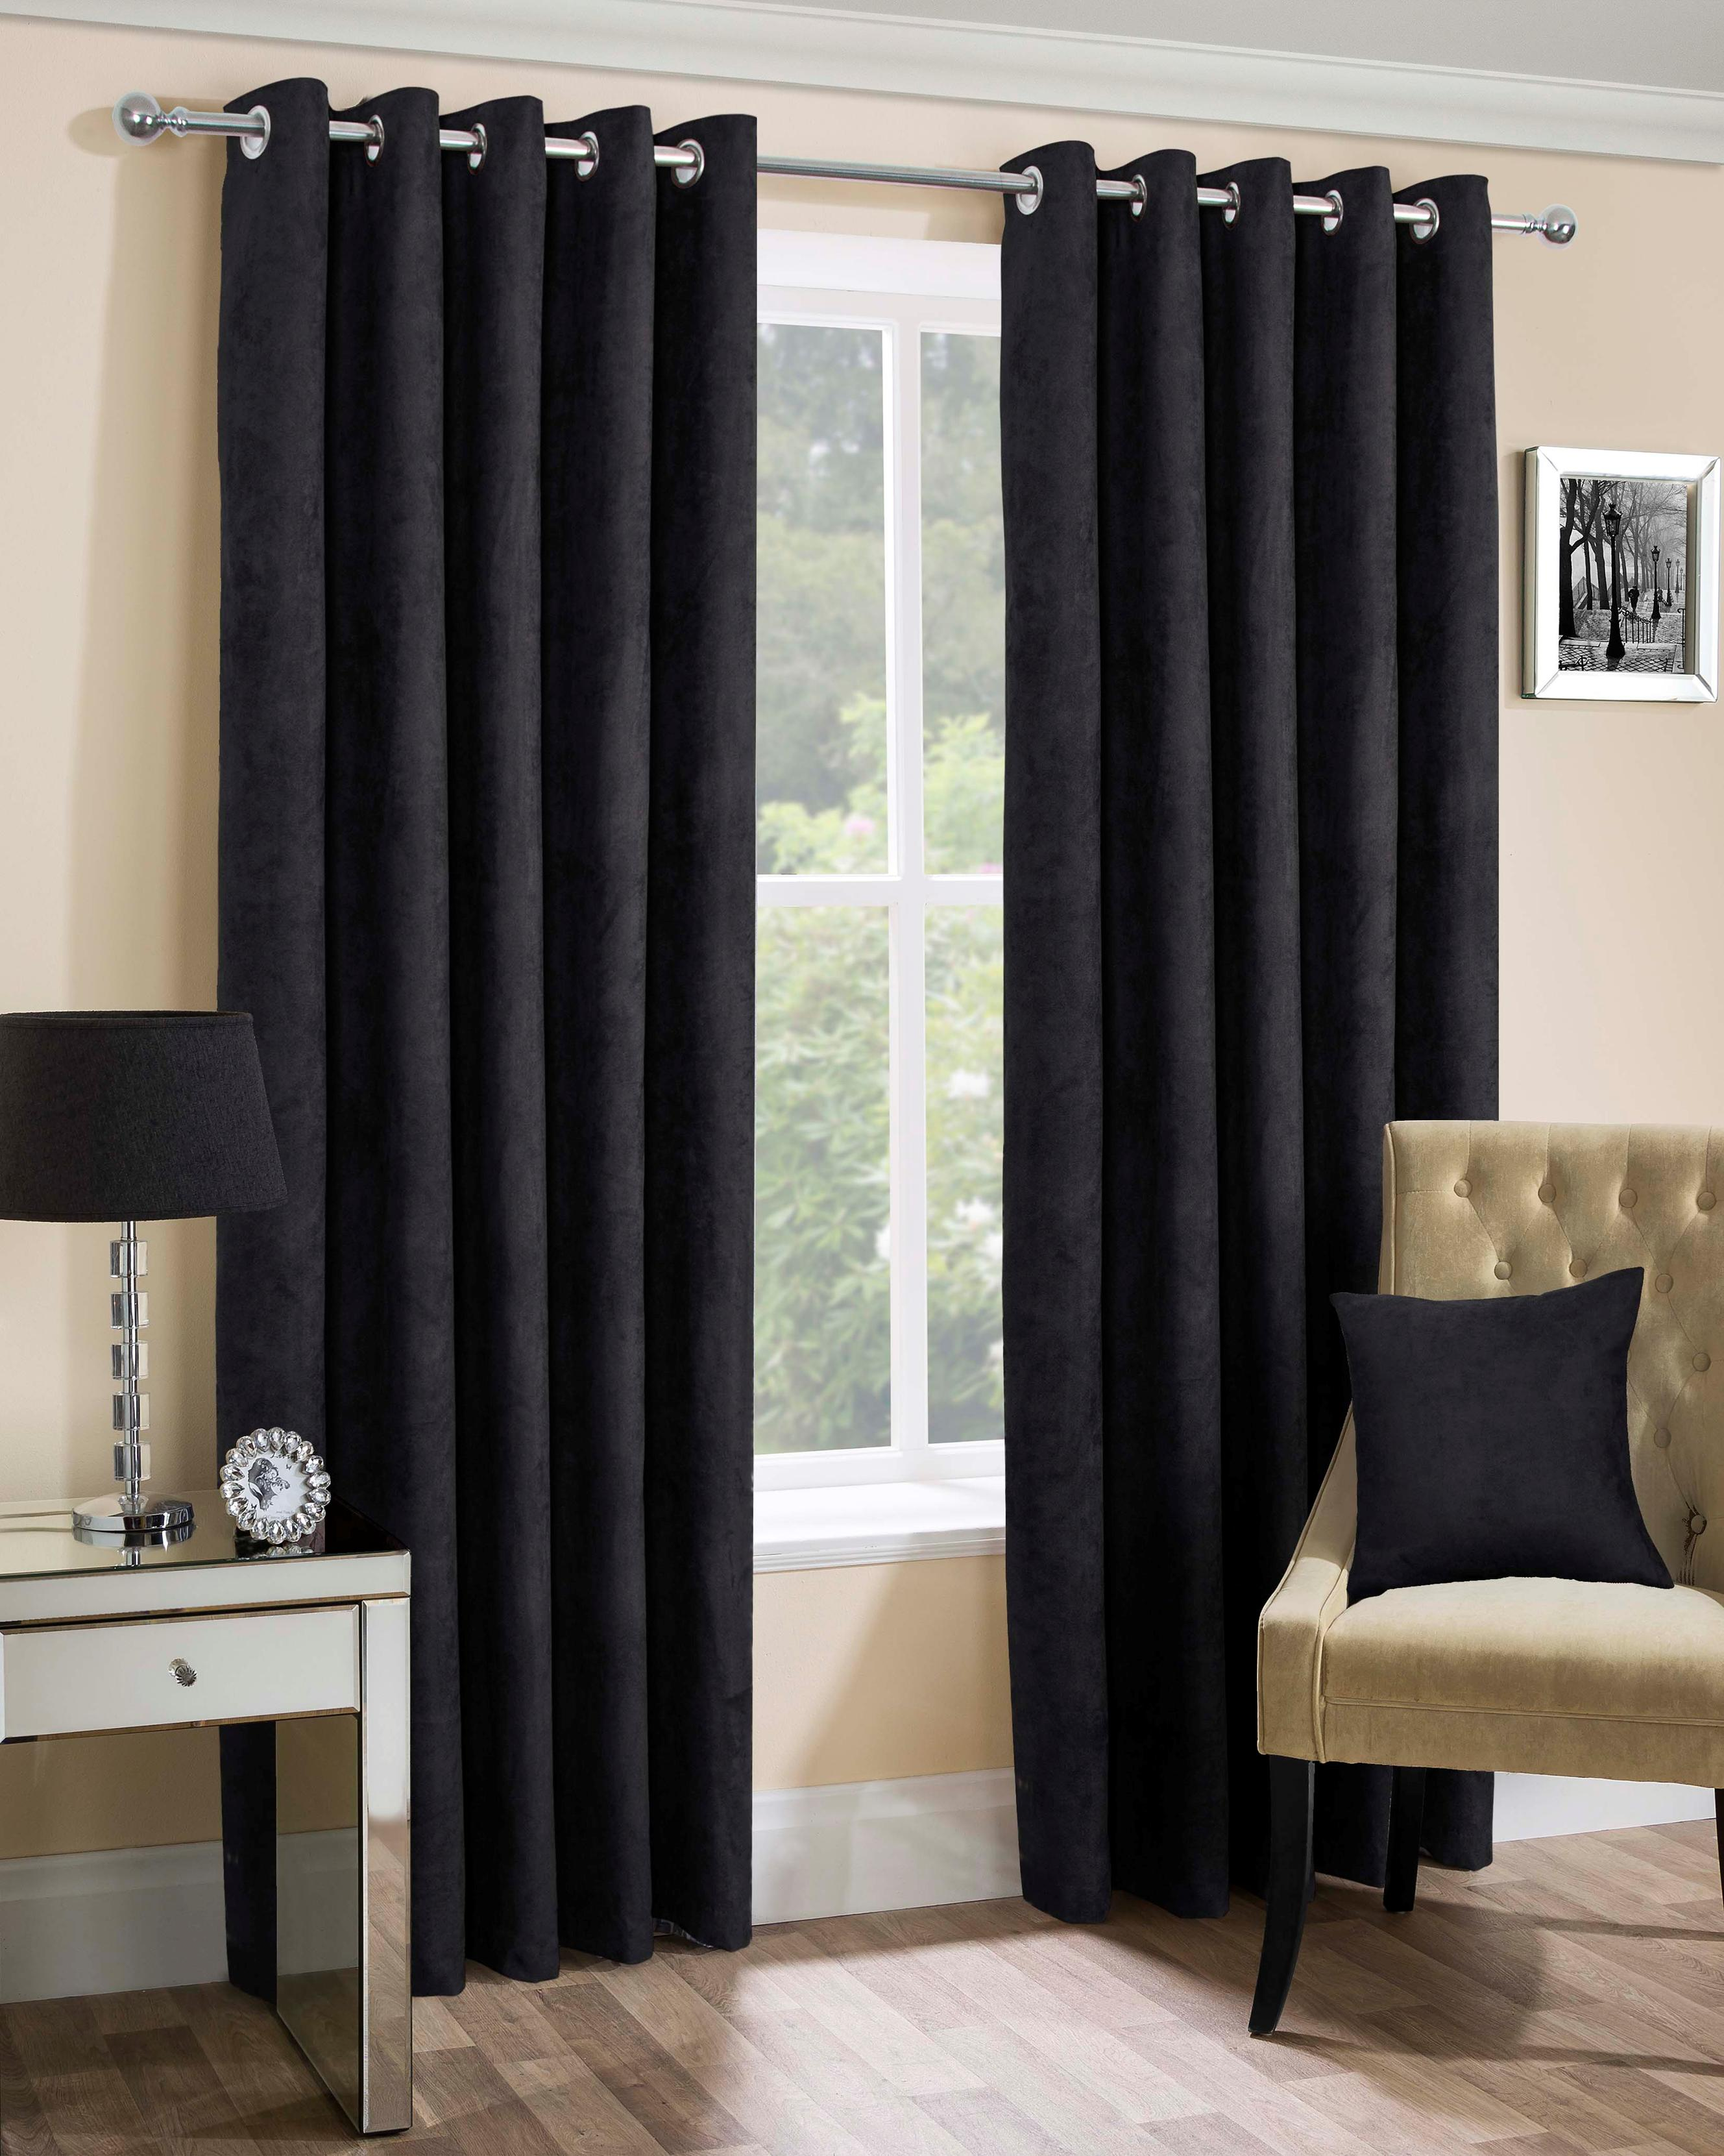 Faux Suede Eyelet Curtains Curtains At Home